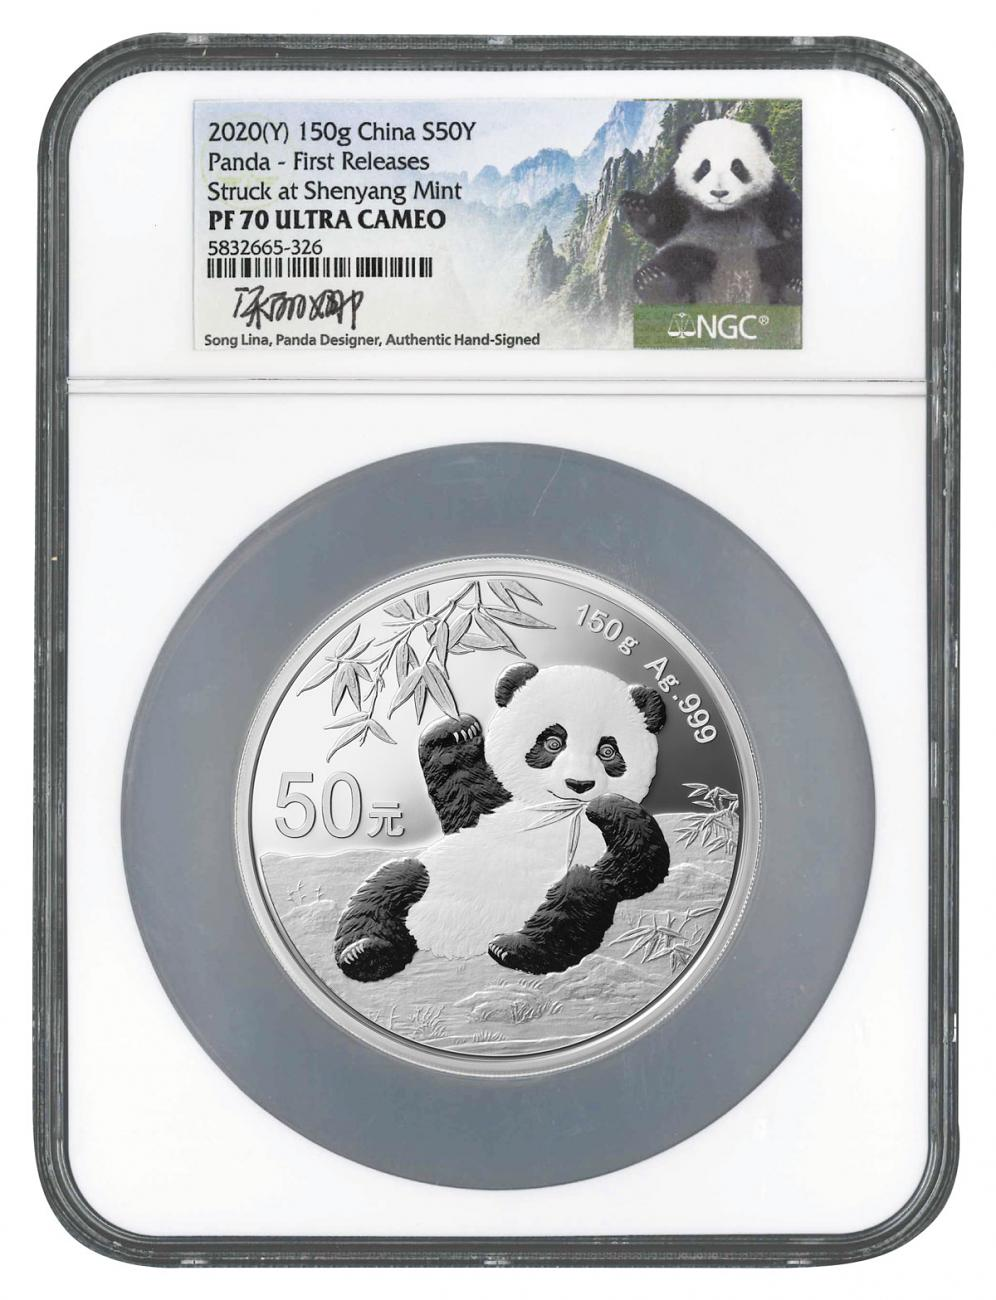 2020 China 150 g Silver Panda Proof ¥50 Coin Scarce and Unique Coin Division NGC PF70 UC FR Song Lina Signed Label